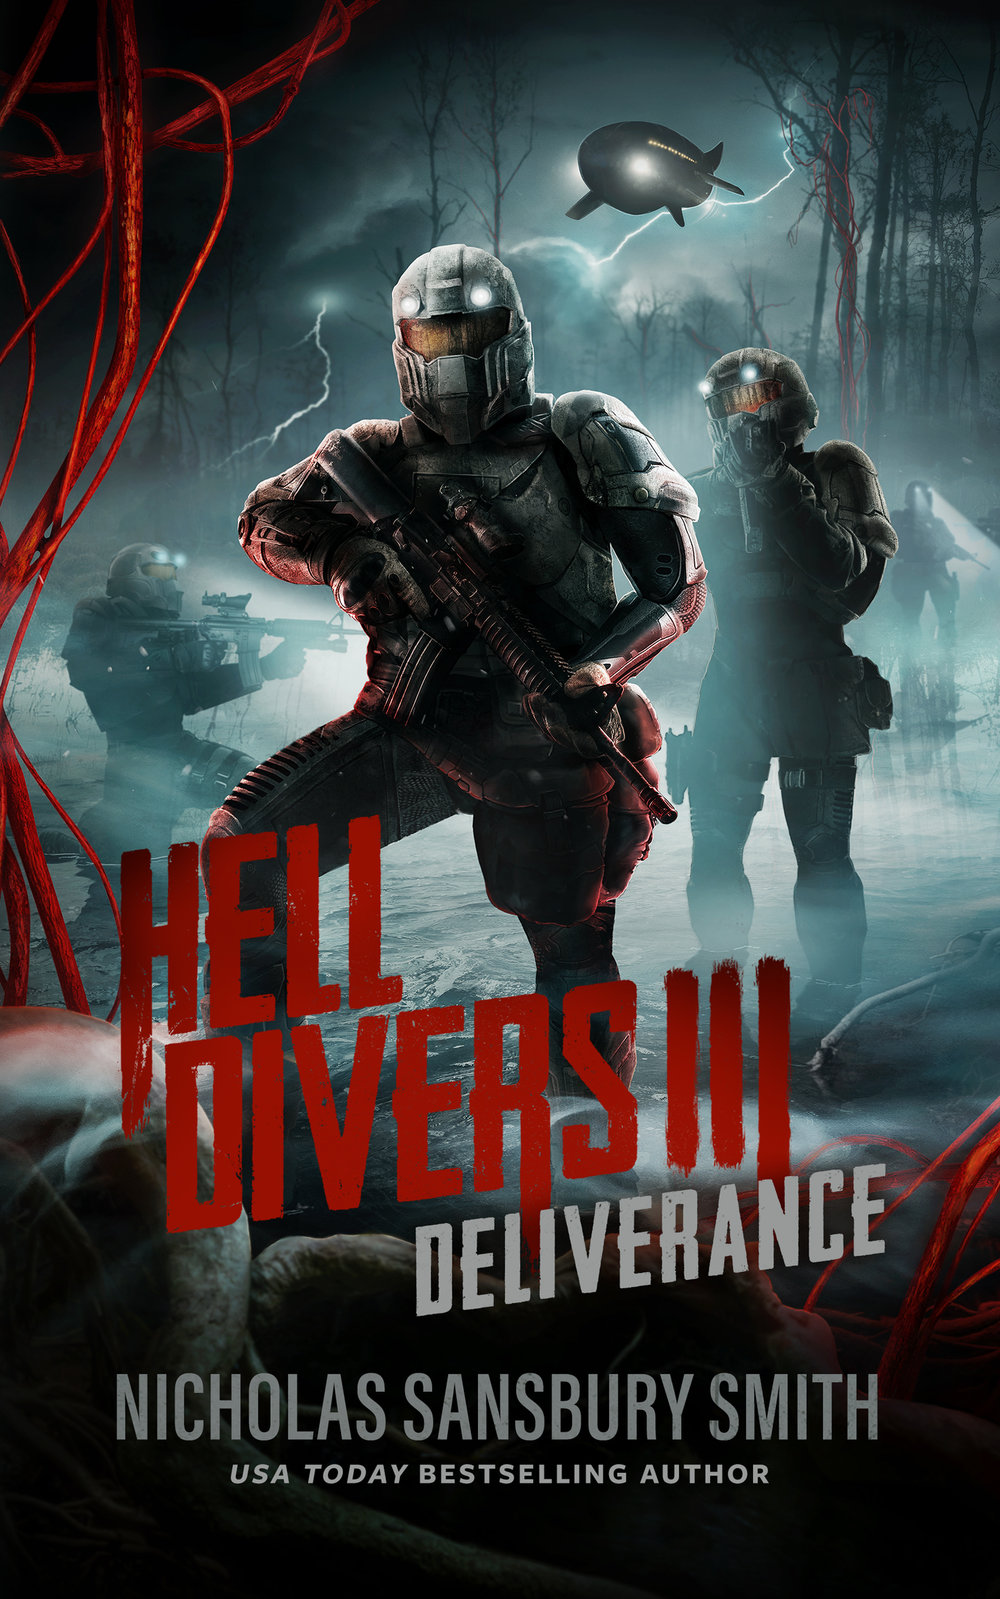 Hell Divers 3_Nicholas_Sansbury_Smith.jpg